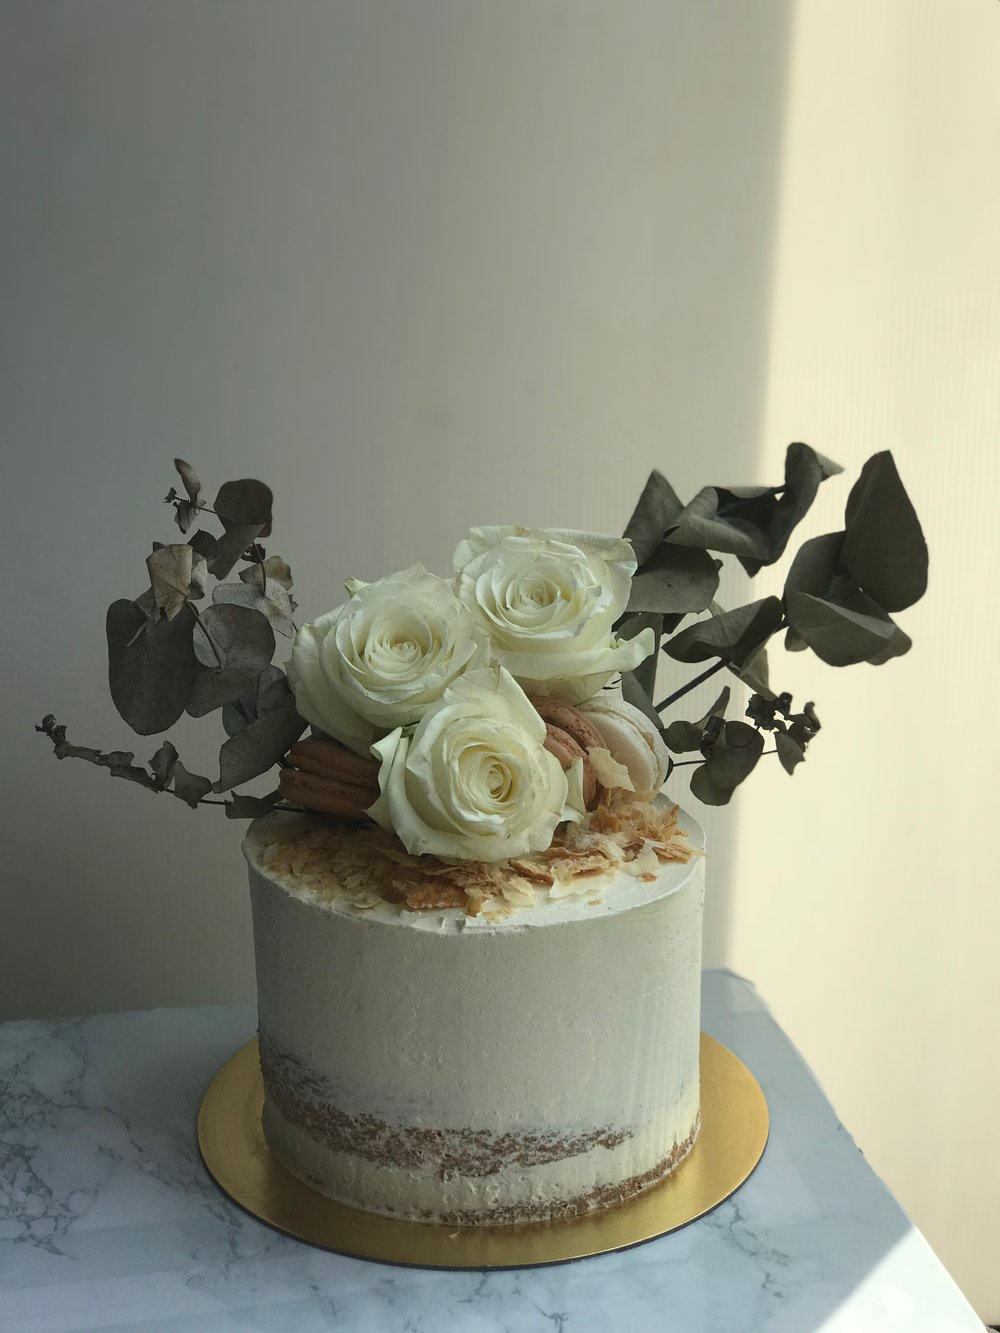 Naked Cake (With Flowers)